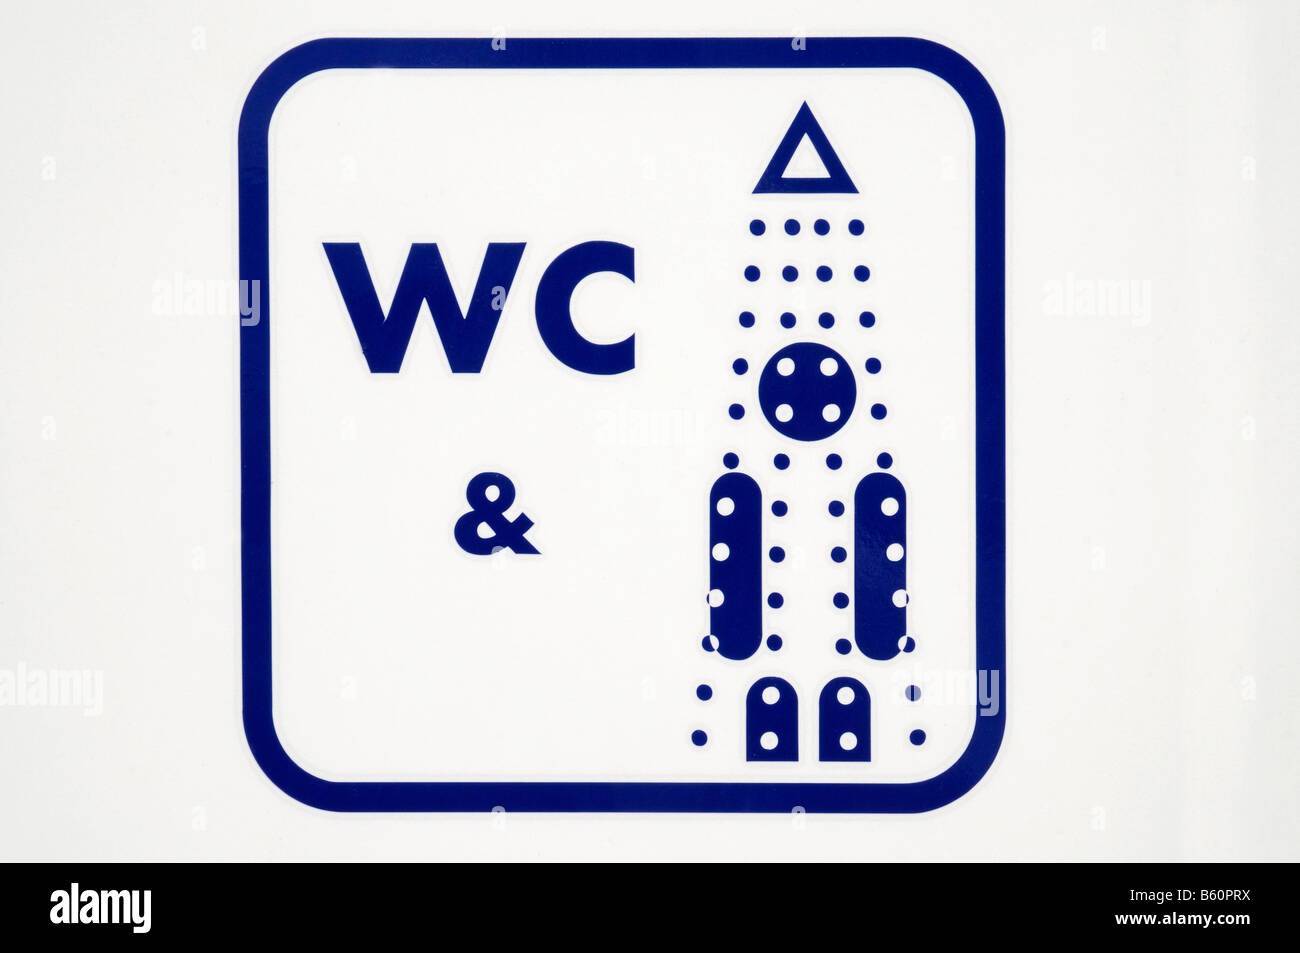 WC, toilet, shower available, offer, sign, guidance, Altea, Costa Blanca, Alicante, Spain, Europe - Stock Image